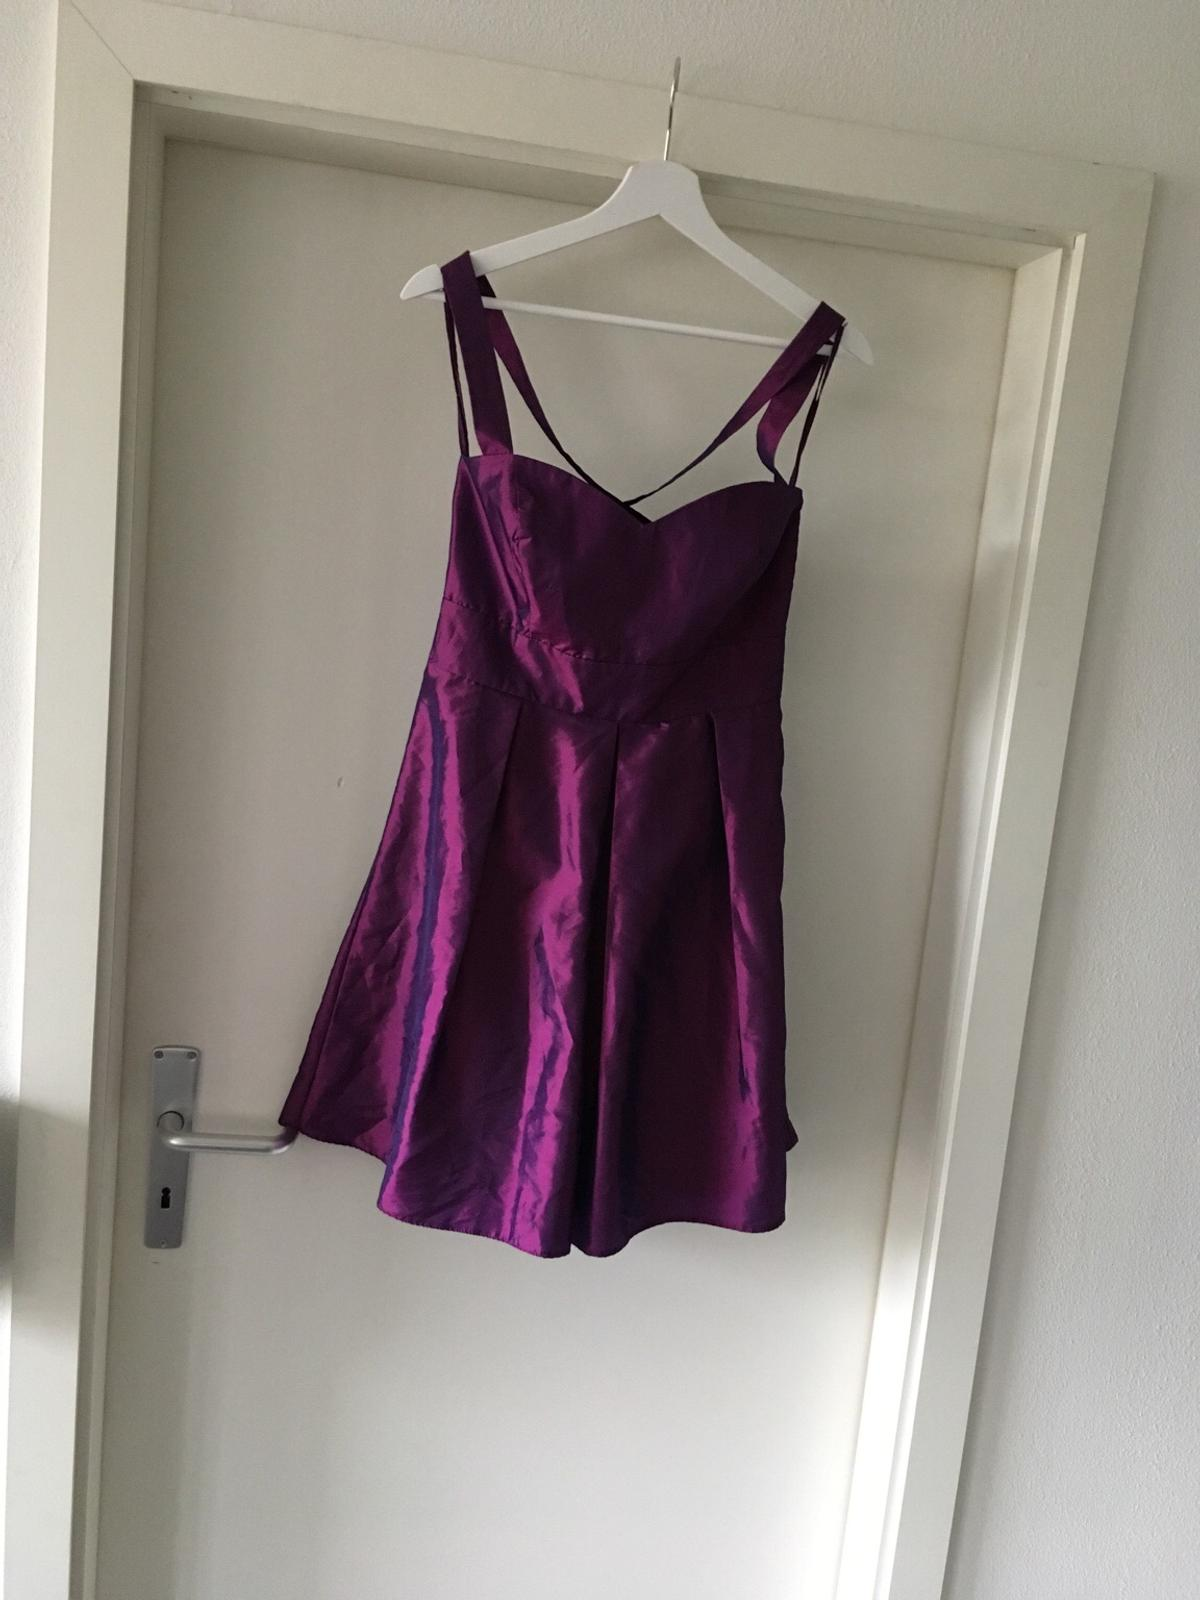 Bruno Banani Cocktailkleid in 11 Hofheim am Taunus for €11.11